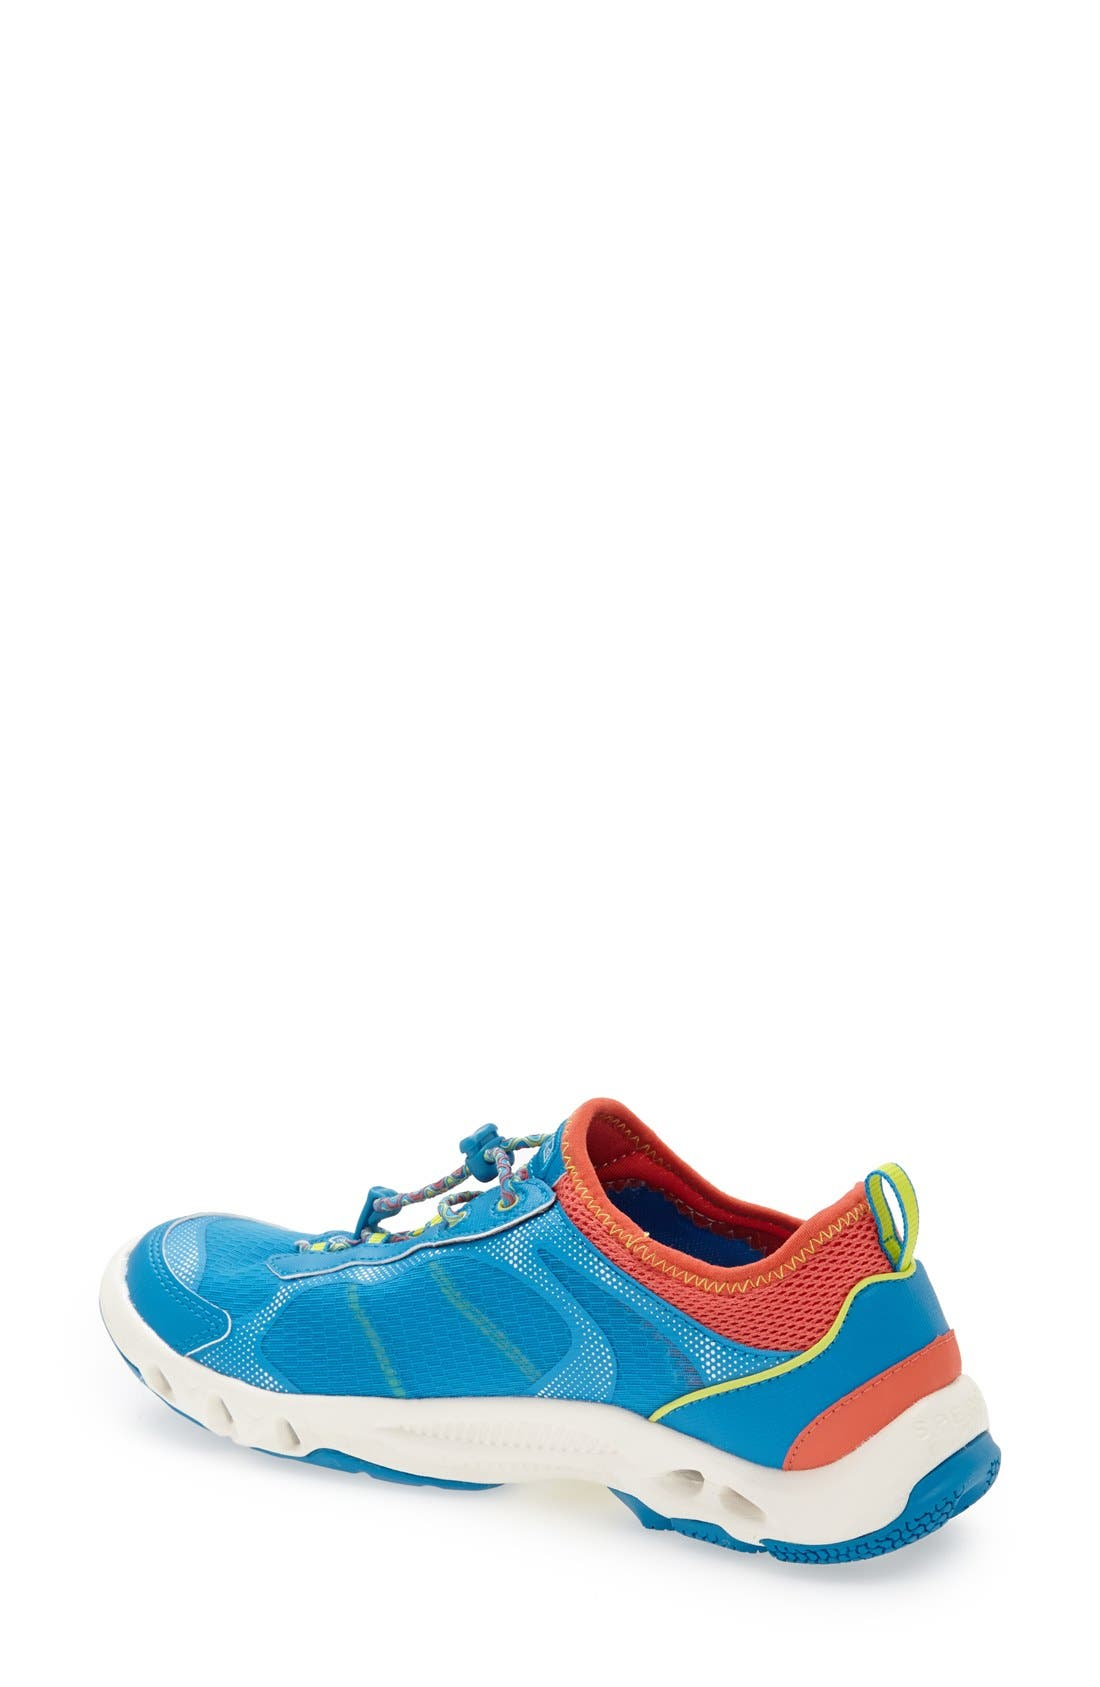 Alternate Image 2  - Sperry 'H20 Escape' Sneaker (Women)